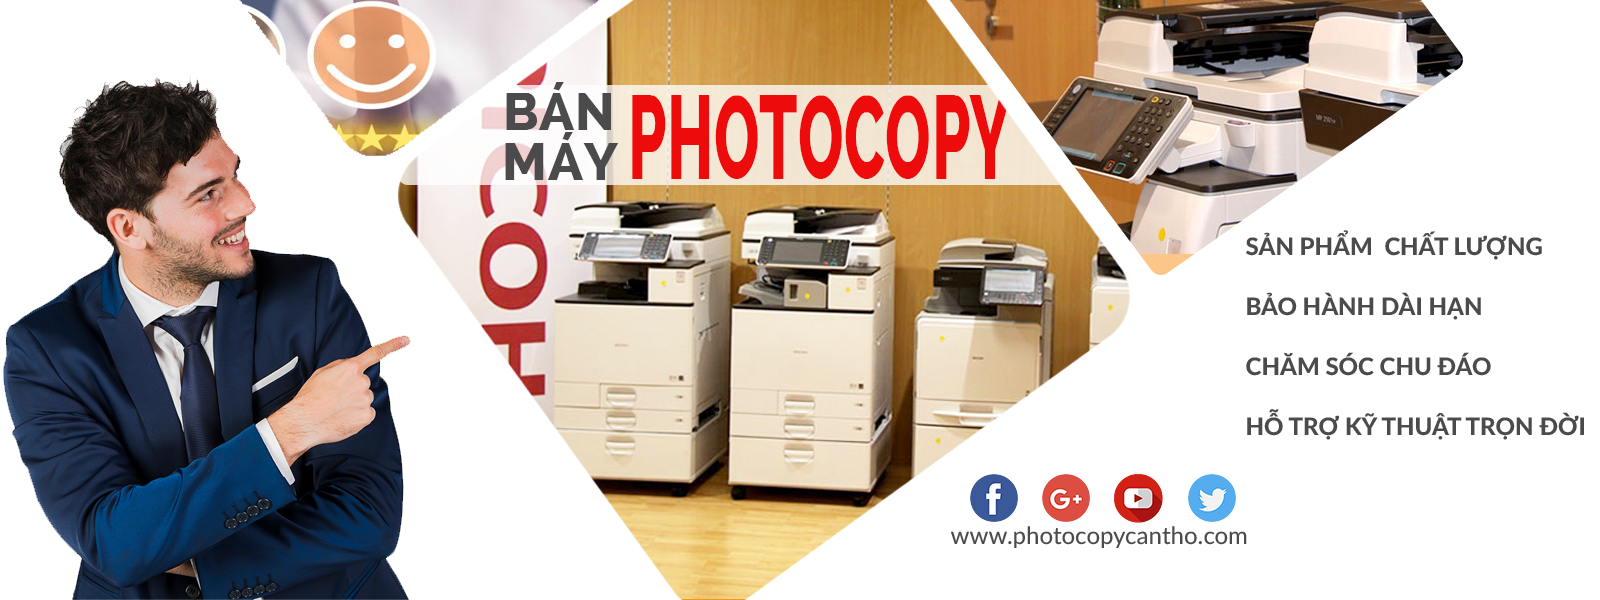 BAN-MAY-PHOTOCOPY-CAN-THO1